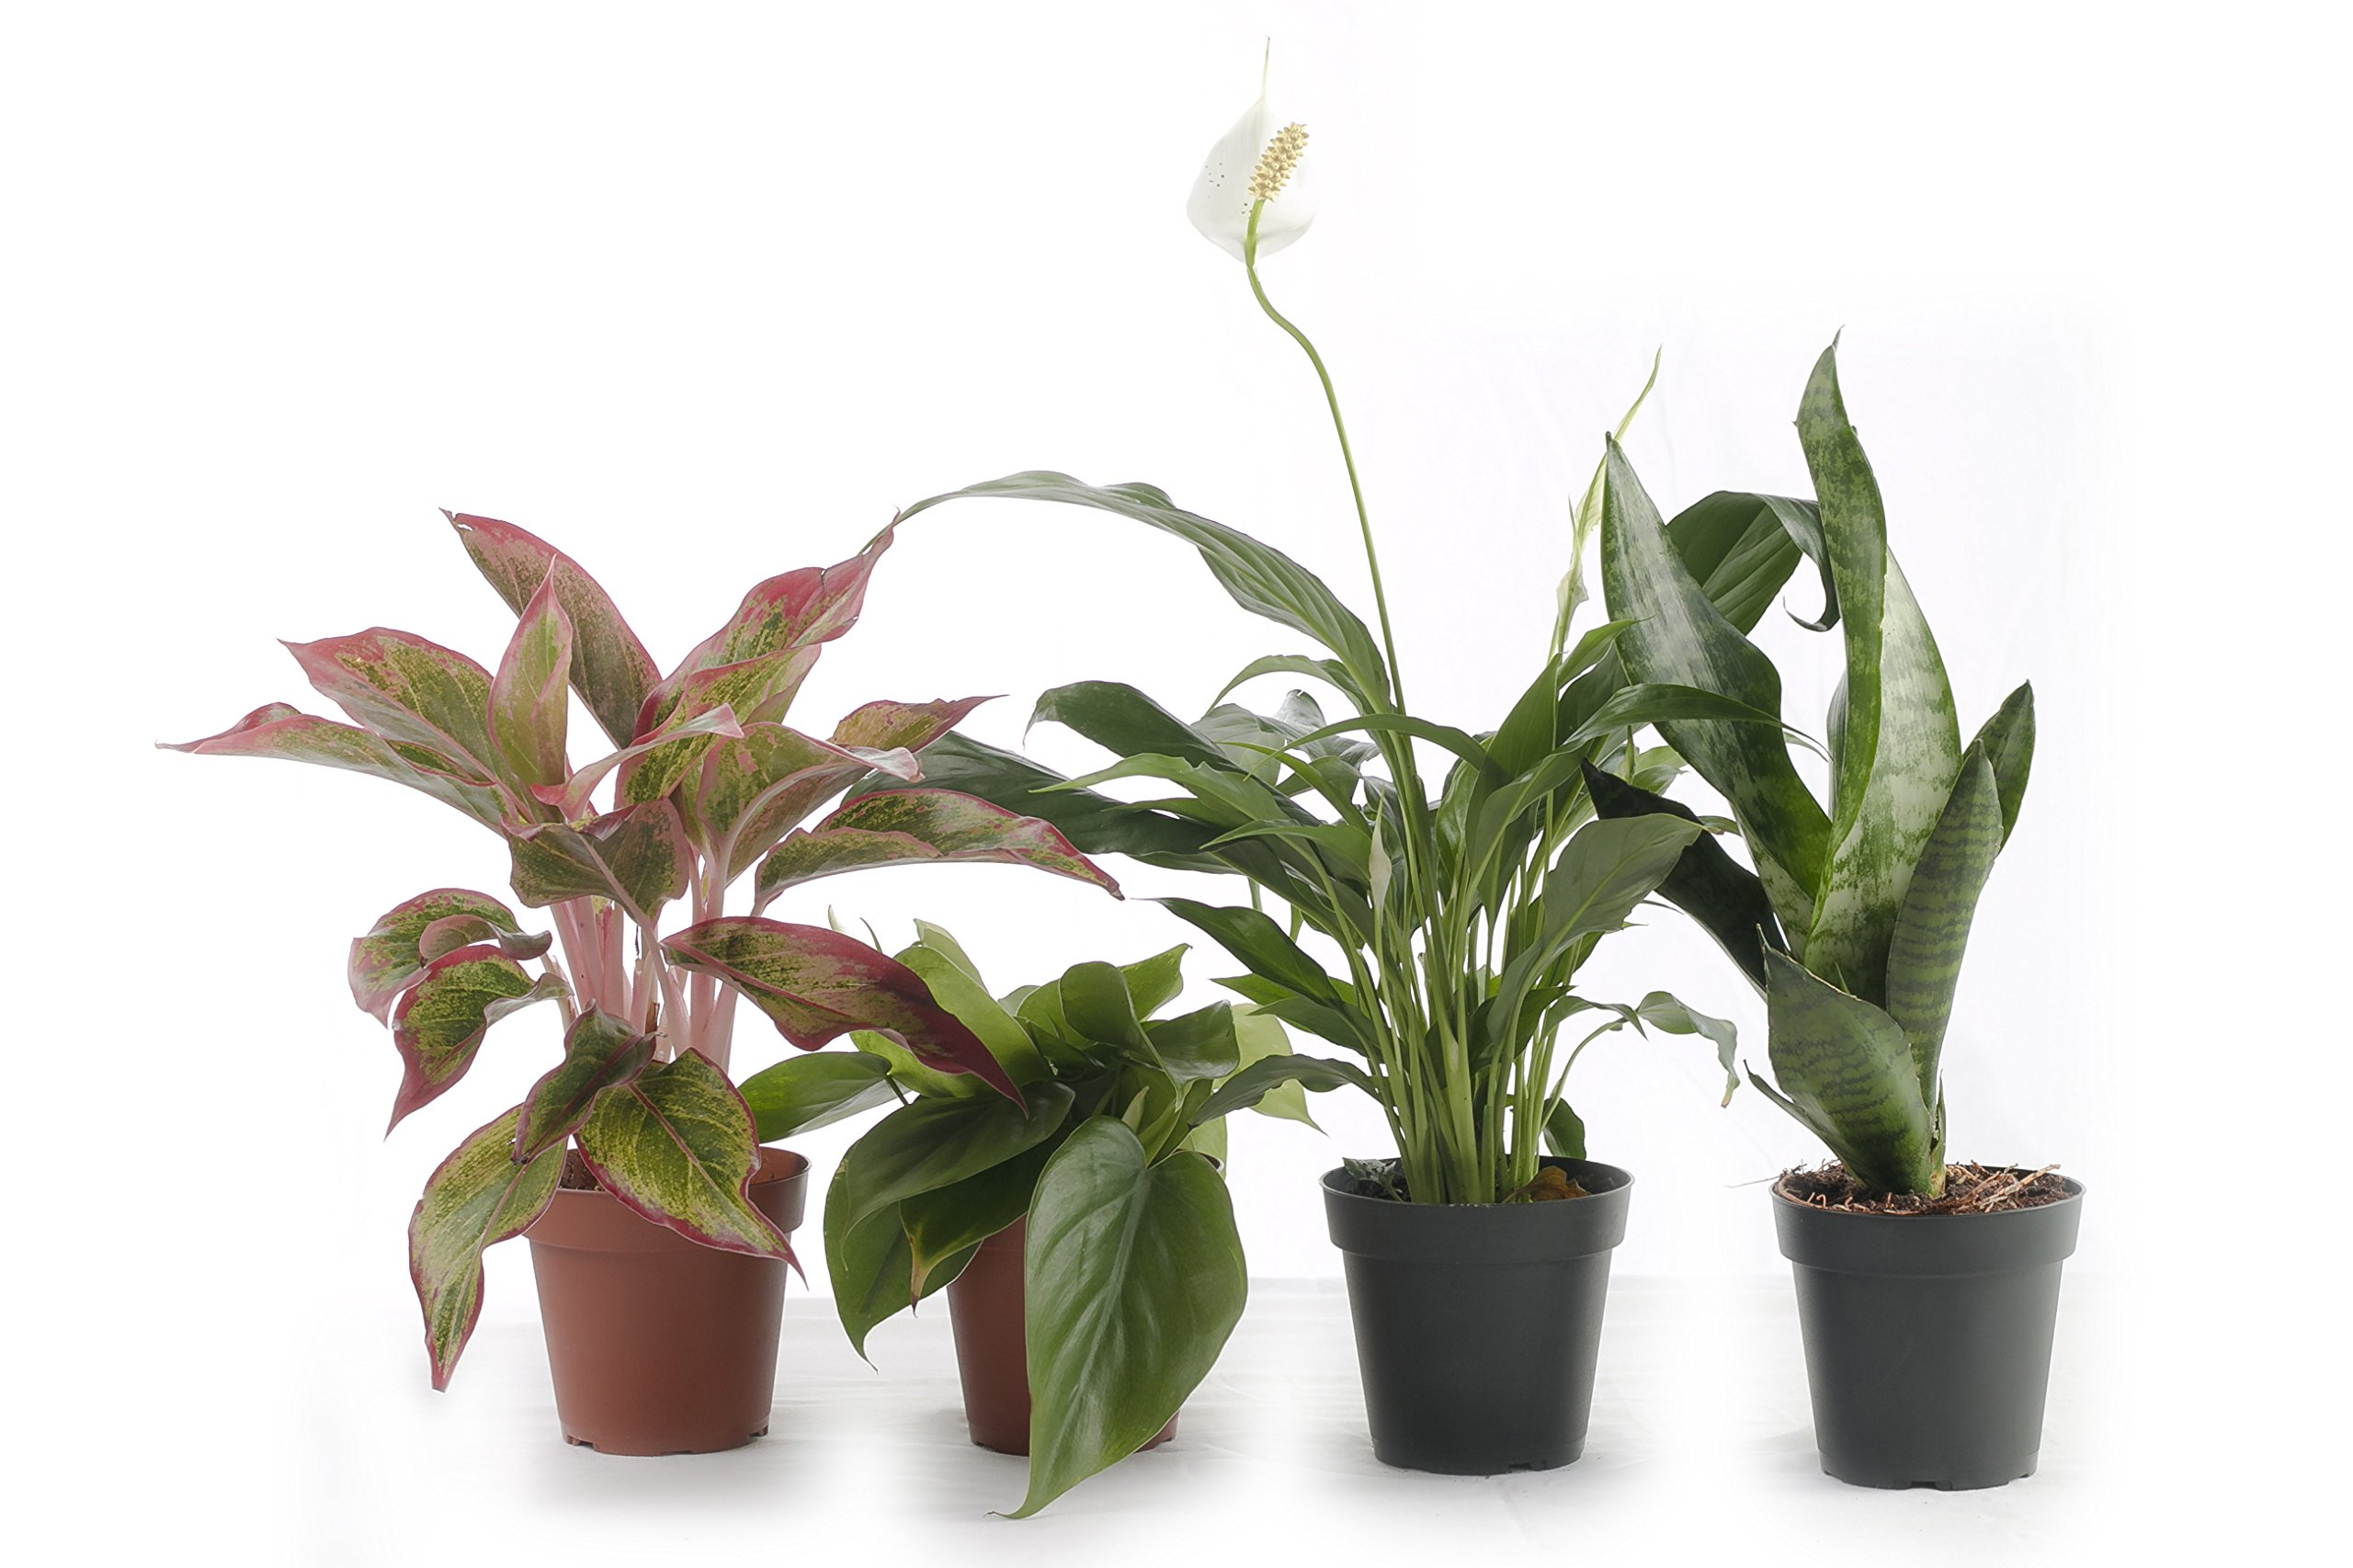 Set of 4 Indoor Plants - Live Potted Plants for Your Home or Office - Includes Red Aglaonema, Snake Plant, Philodendron, and Peace Lily - Great for Interior Decorating and Cleaning the Air by BDWS (Image #1)